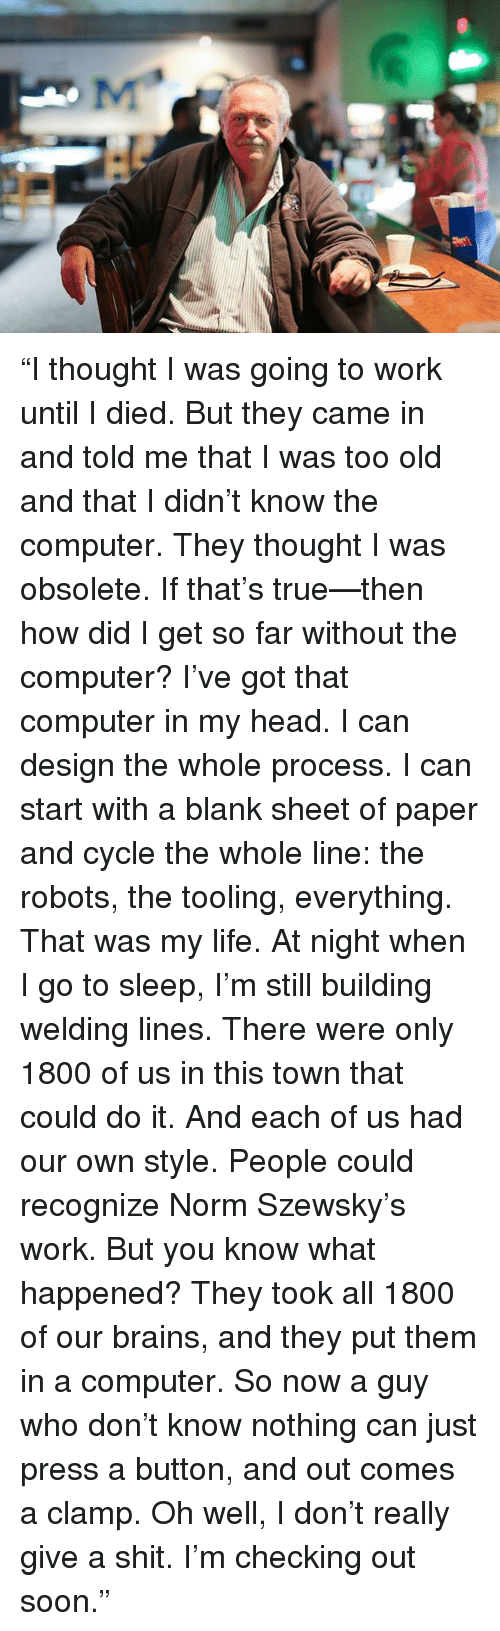 """Pressing A Button: """"I thought I was going to work until I died.  But they came in and told me that I was too old and that I didn't know the computer.  They thought I was obsolete.  If that's true—then how did I get so far without the computer?  I've got that computer in my head.  I can design the whole process.  I can start with a blank sheet of paper and cycle the whole line: the robots, the tooling, everything.  That was my life.  At night when I go to sleep, I'm still building welding lines.  There were only 1800 of us in this town that could do it.   And each of us had our own style.  People could recognize Norm Szewsky's work.  But you know what happened?  They took all 1800 of our brains, and they put them in a computer.  So now a guy who don't know nothing can just press a button, and out comes a clamp.  Oh well, I don't really give a shit.  I'm checking out soon."""""""